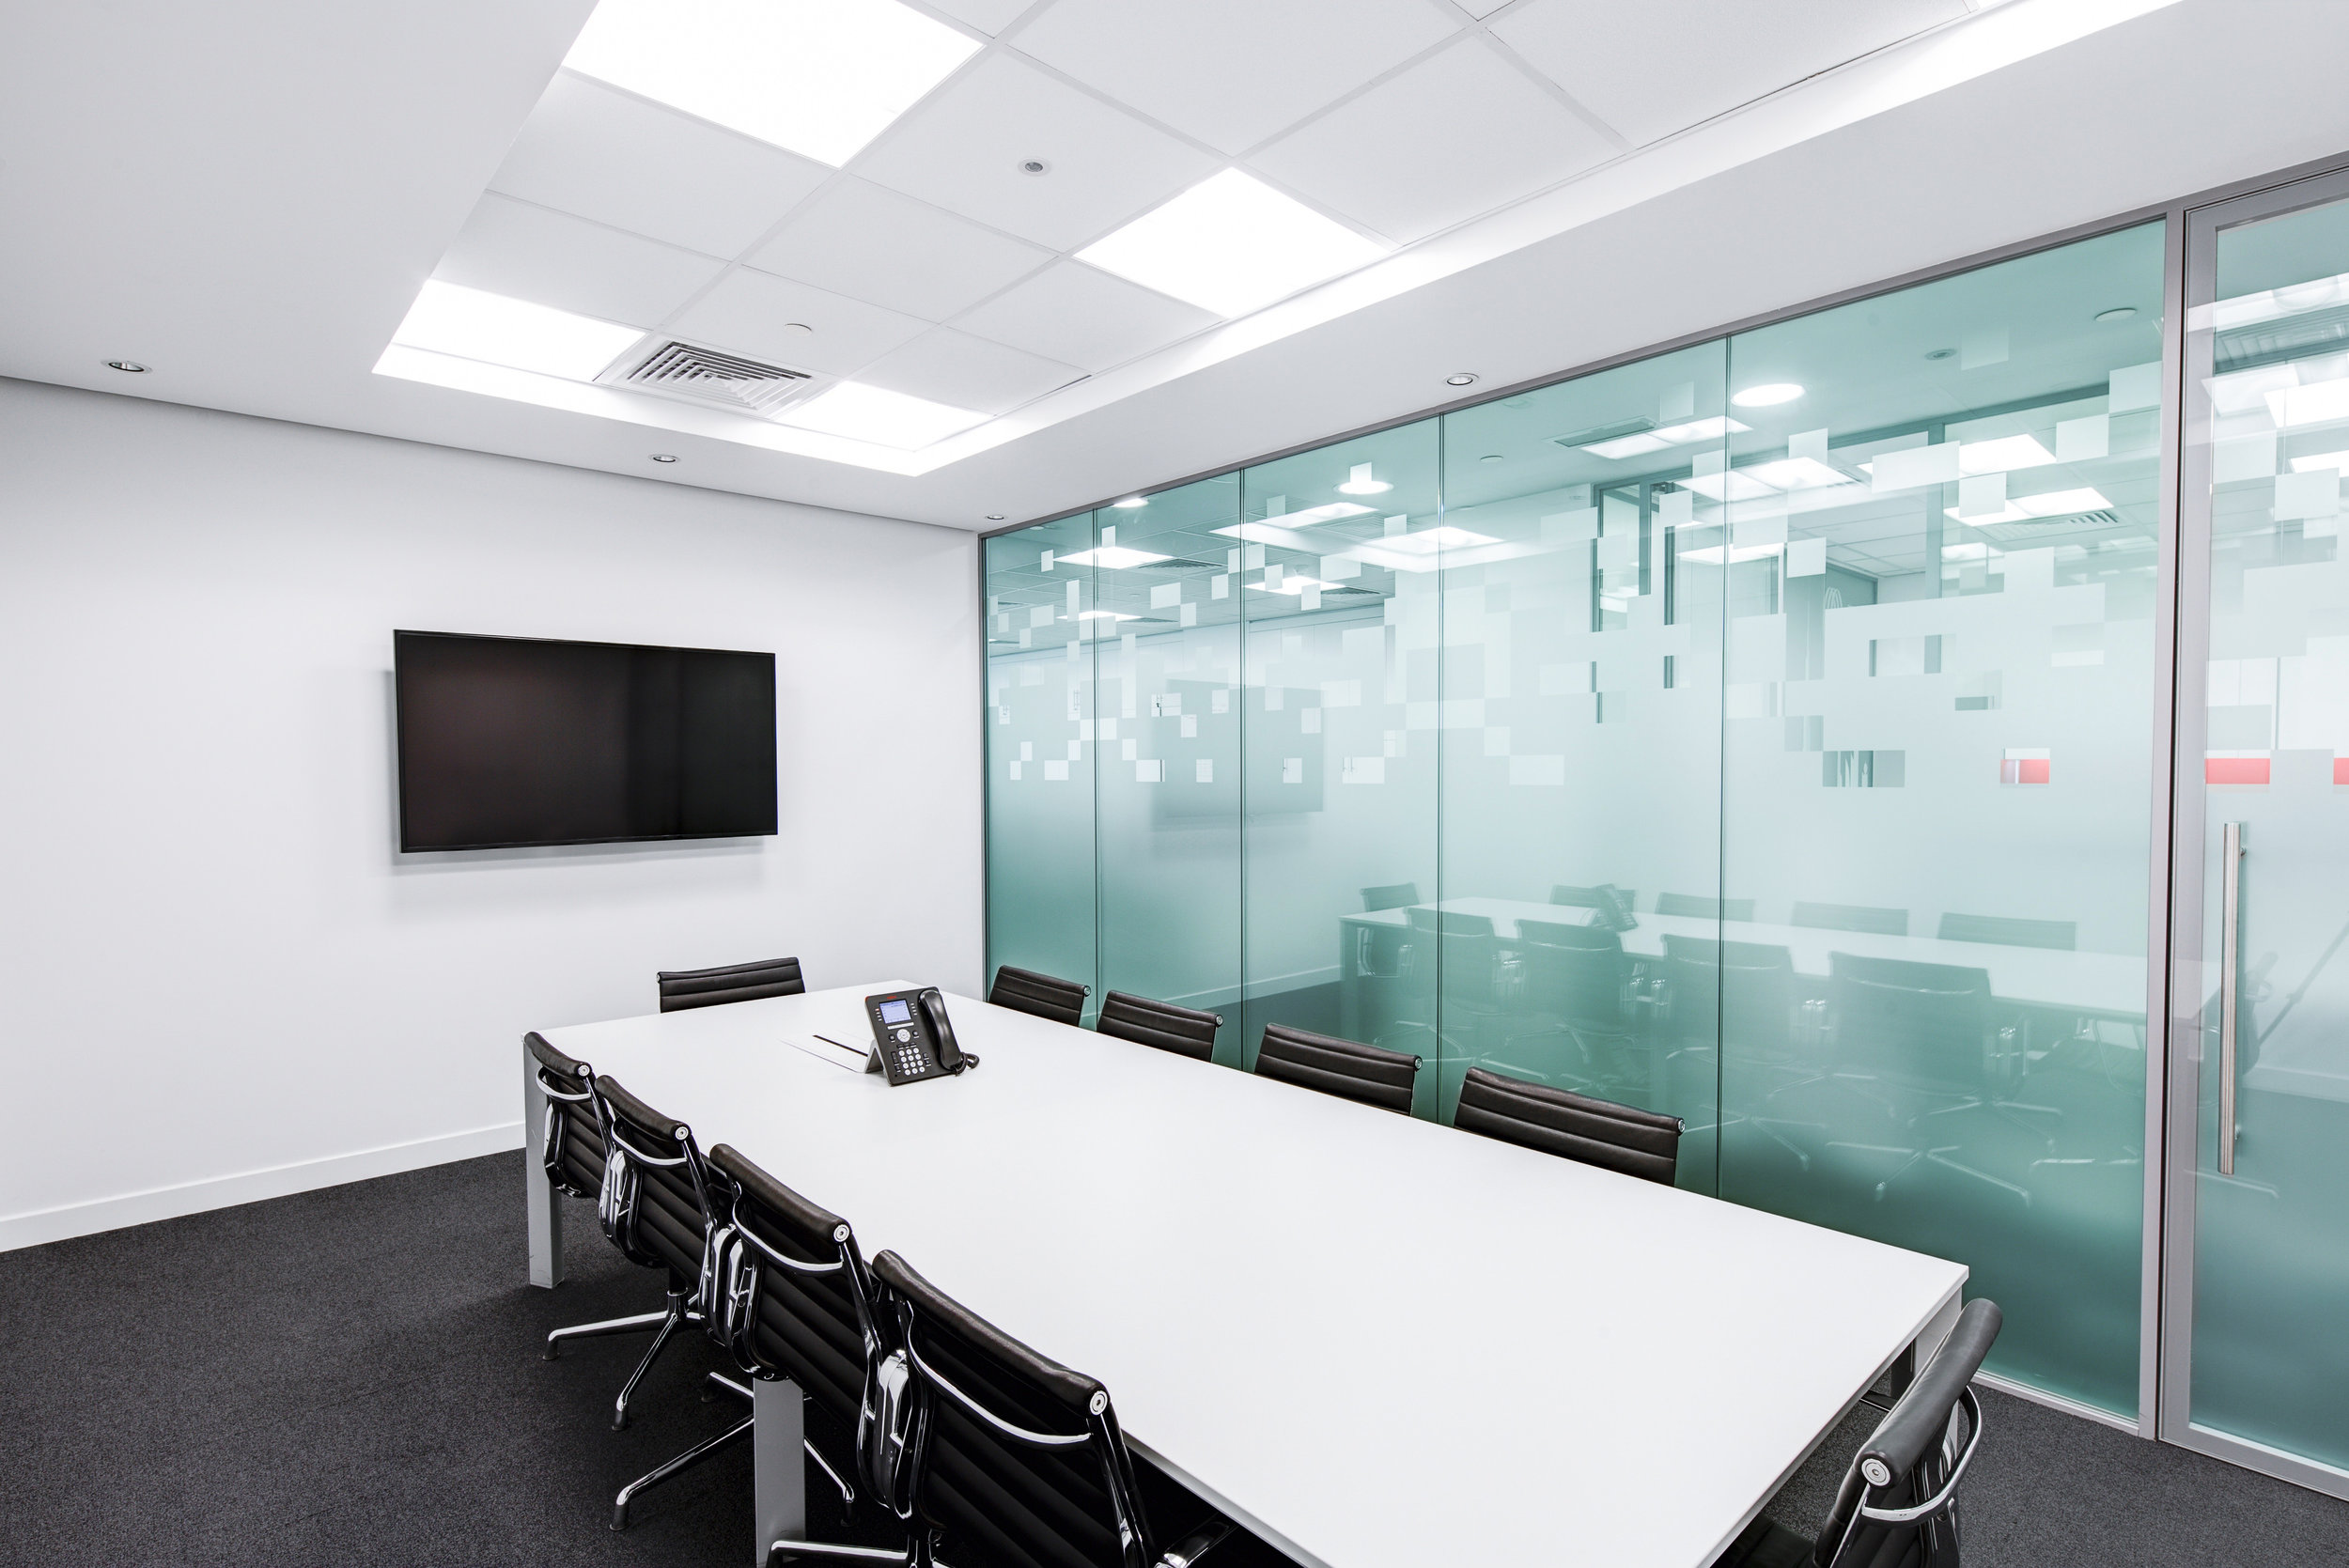 black-and-white-boardroom-ceiling-260689 copy.jpg